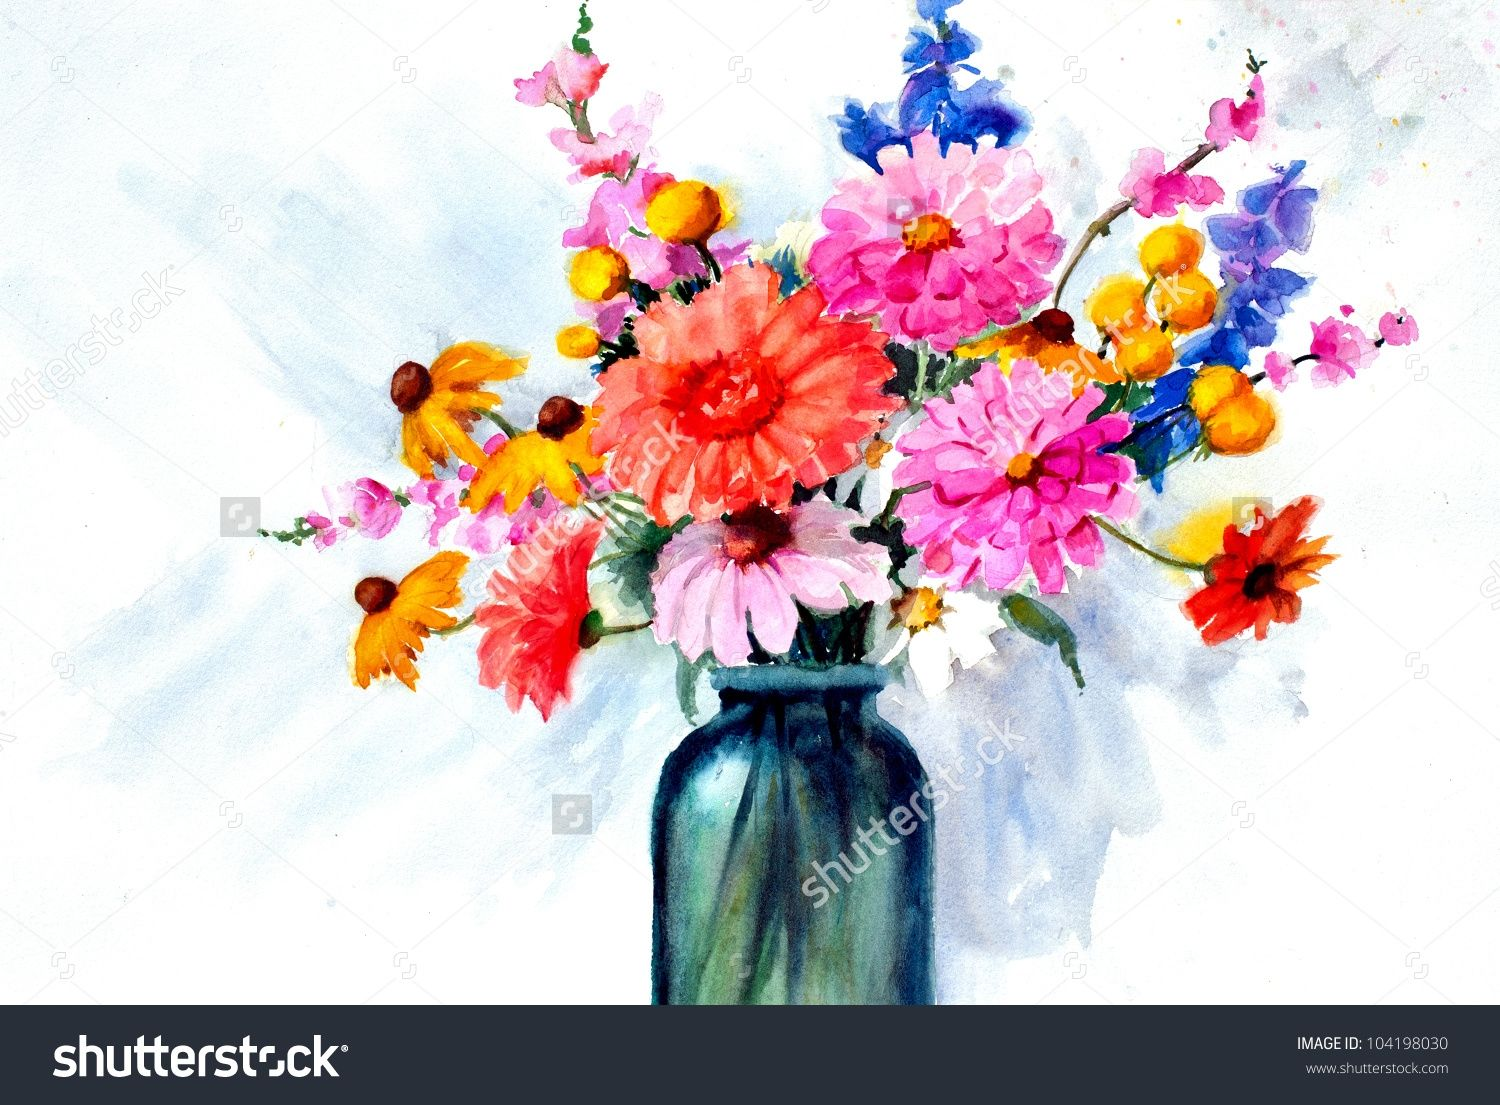 Beautiful flower vase paintings vase pinterest flower vases beautiful flower vase paintings reviewsmspy